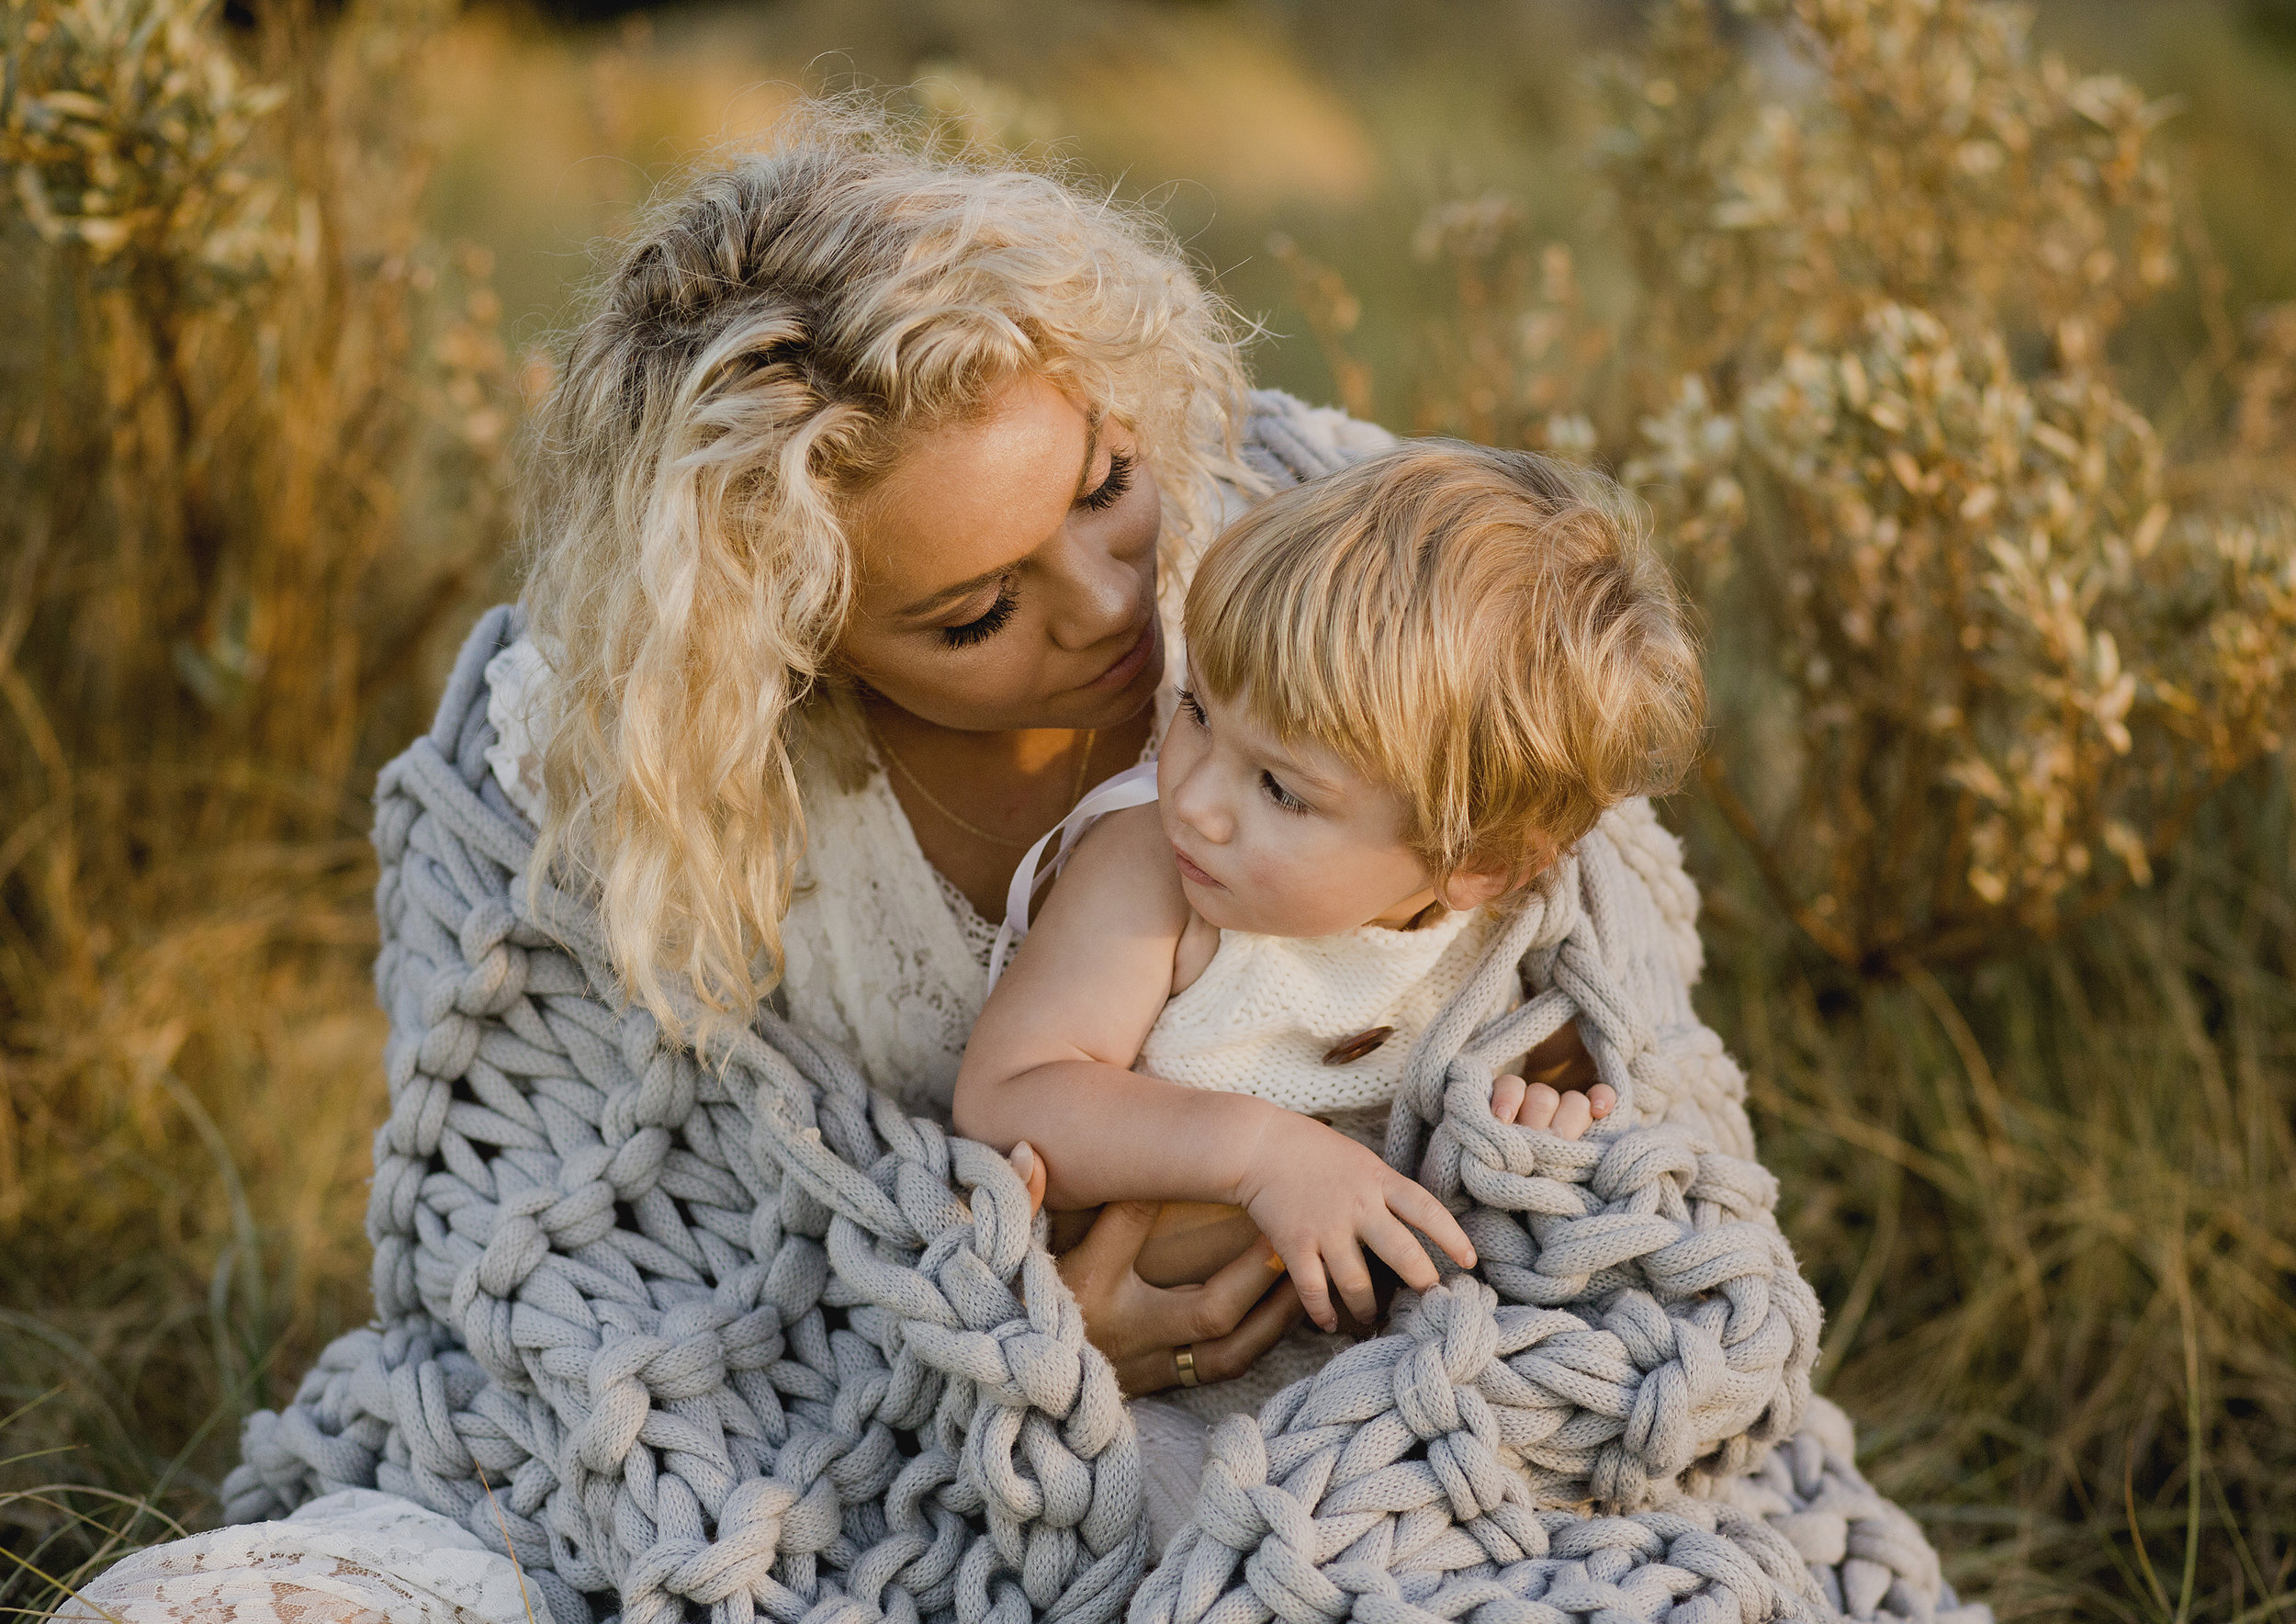 Mother and her 18 month old son photo shoot at the beach